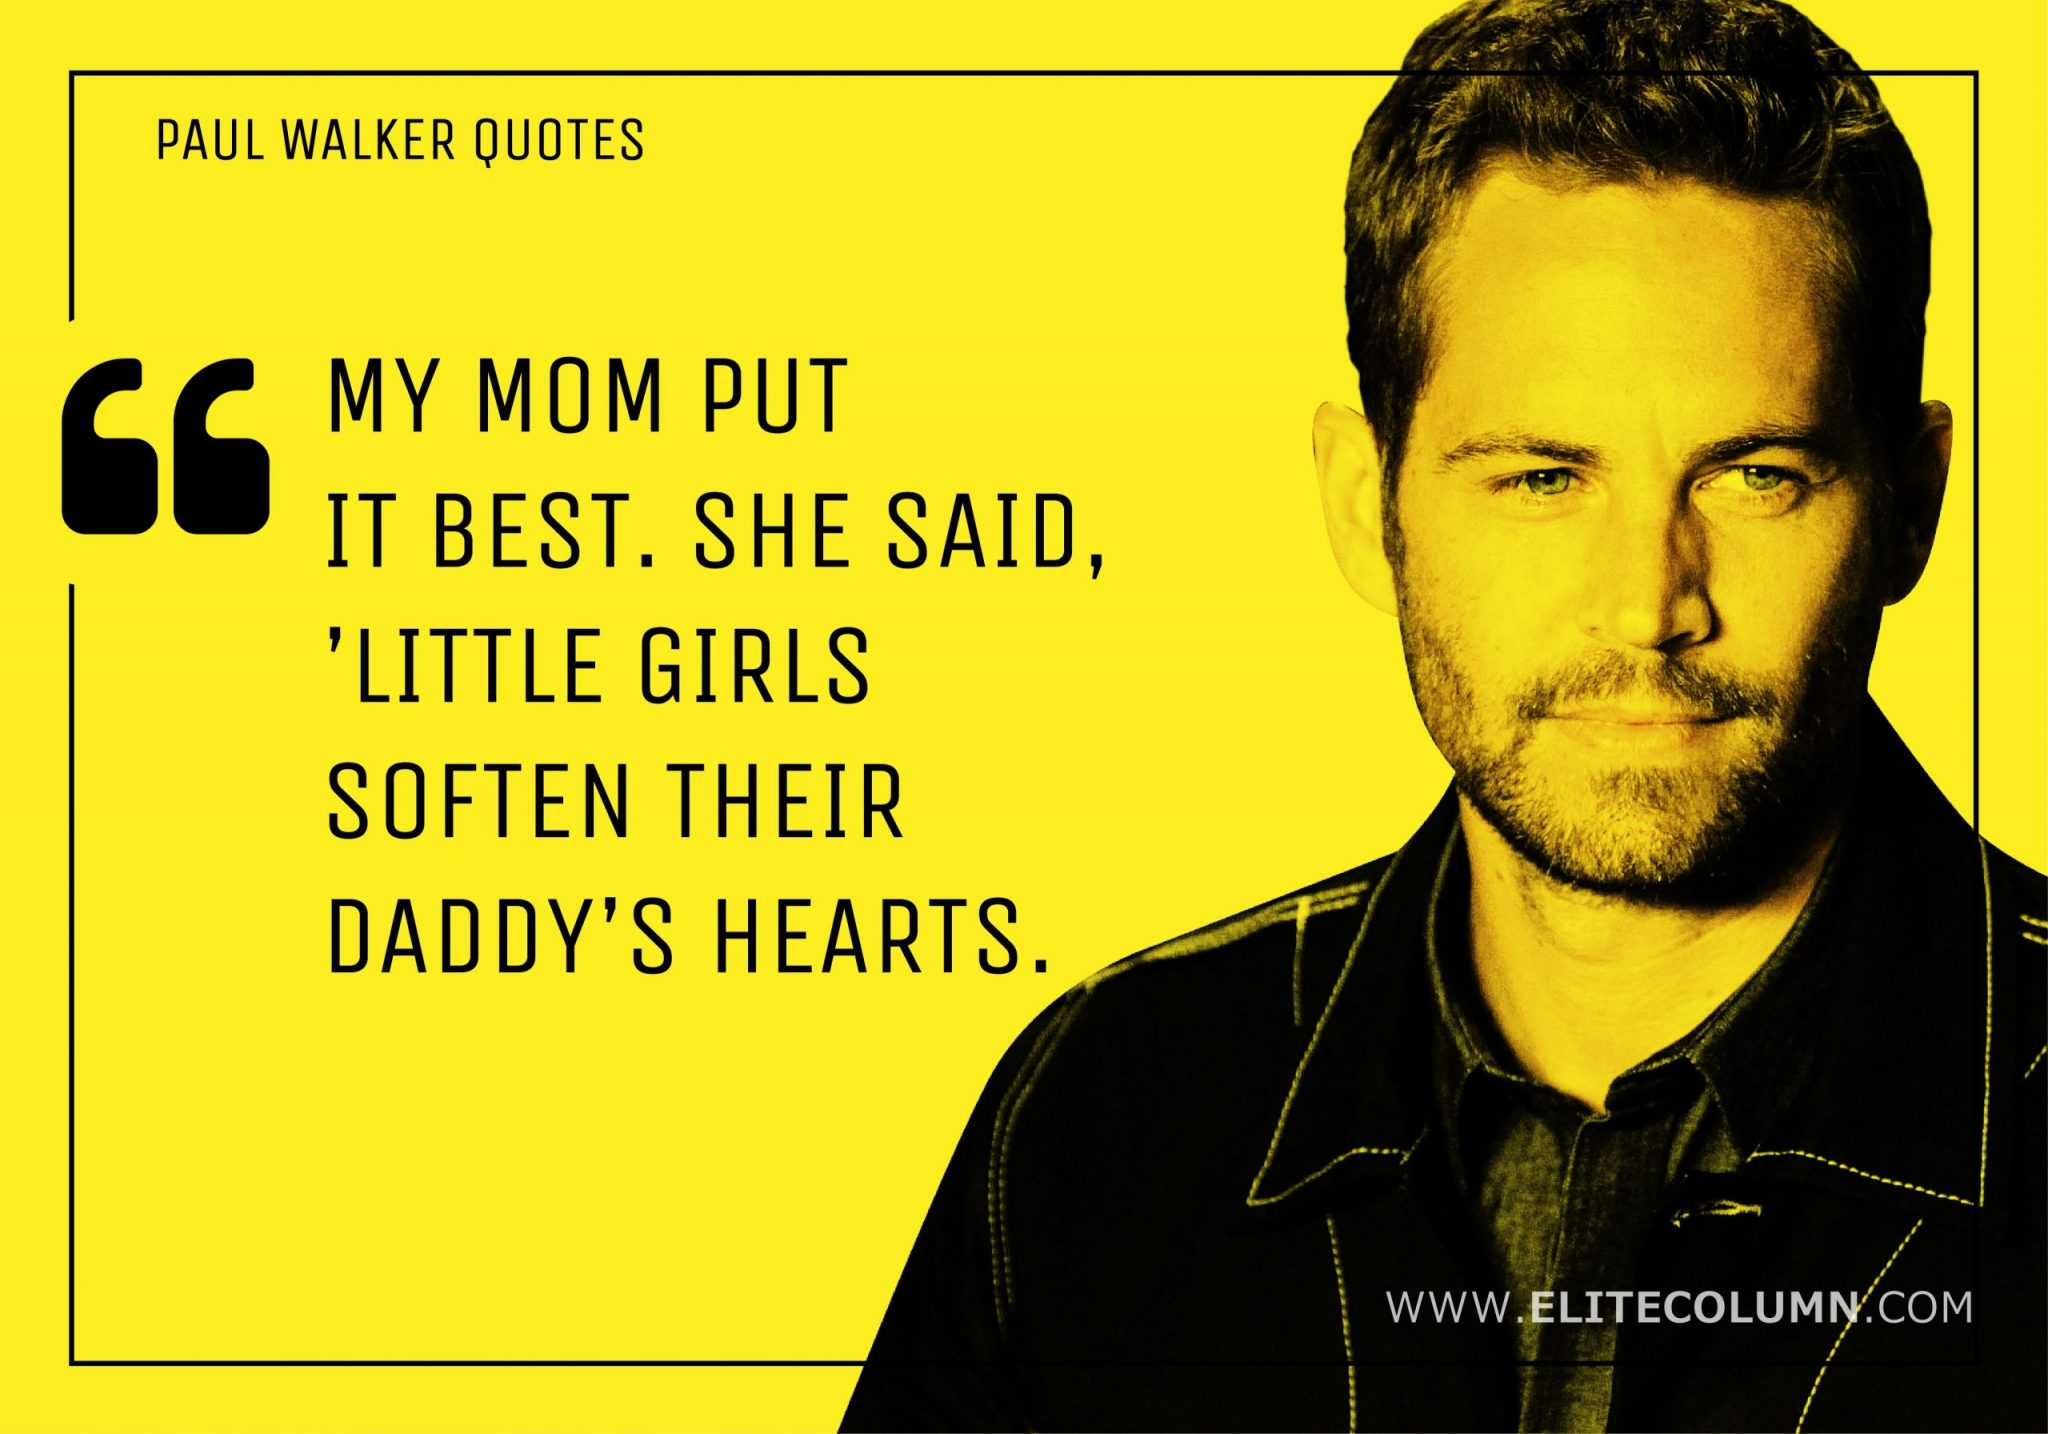 Paul Walker Quotes (2)